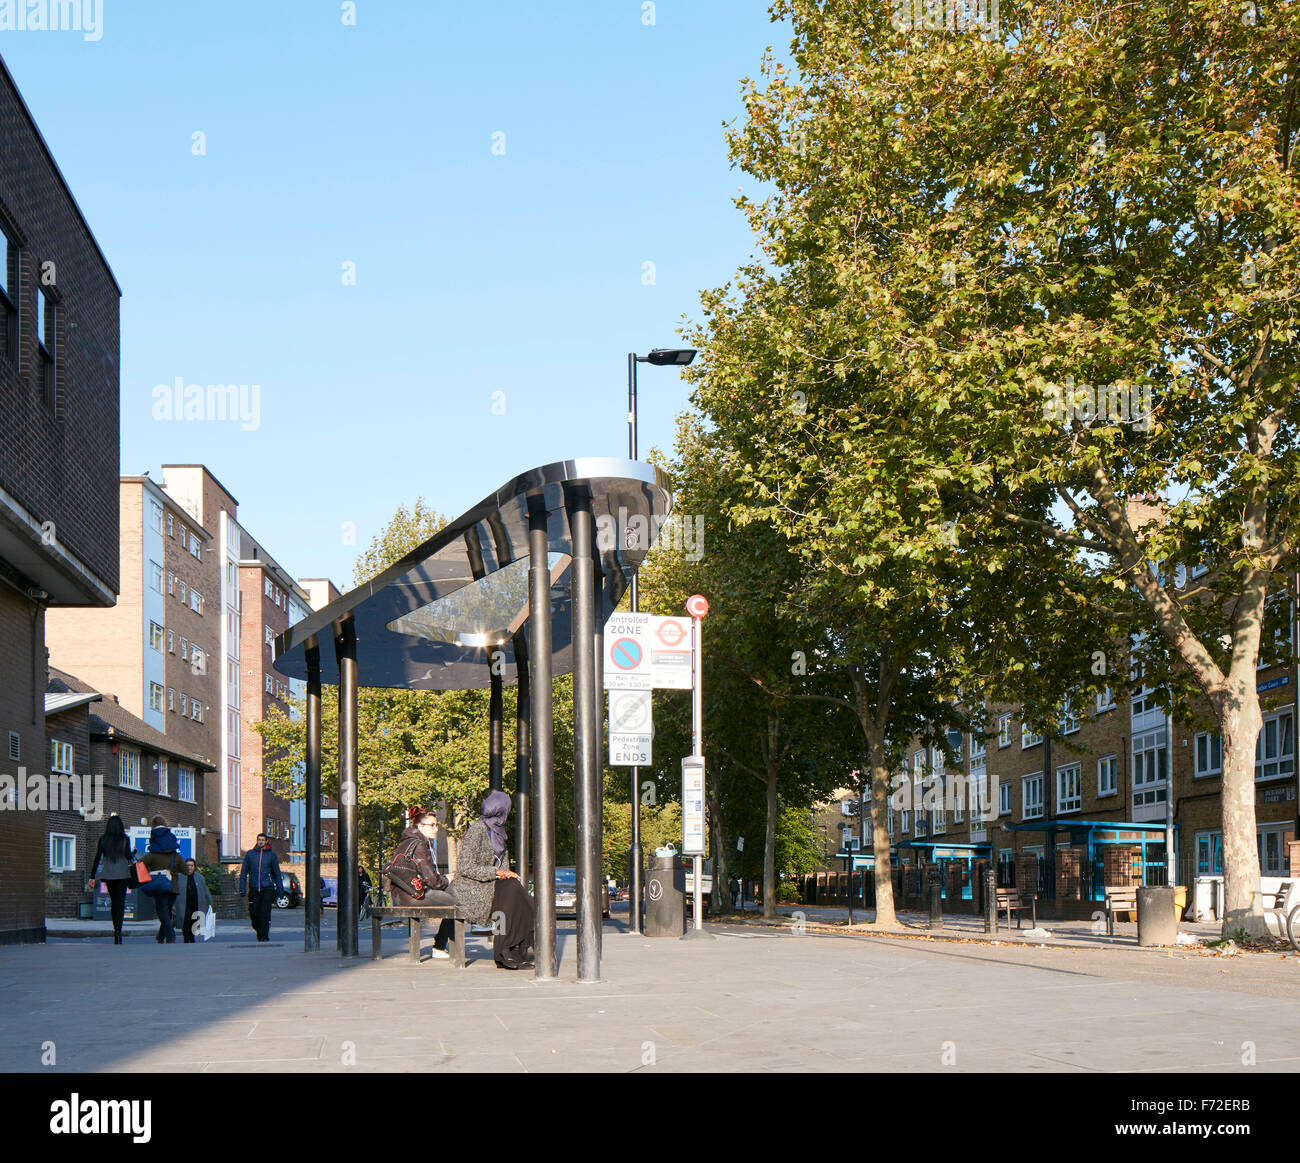 Pedestrianised area of Binfield Rd with bus shelter. Binfield Road Bus Shelter, Stockwell Framework Masterplan, - Stock Image